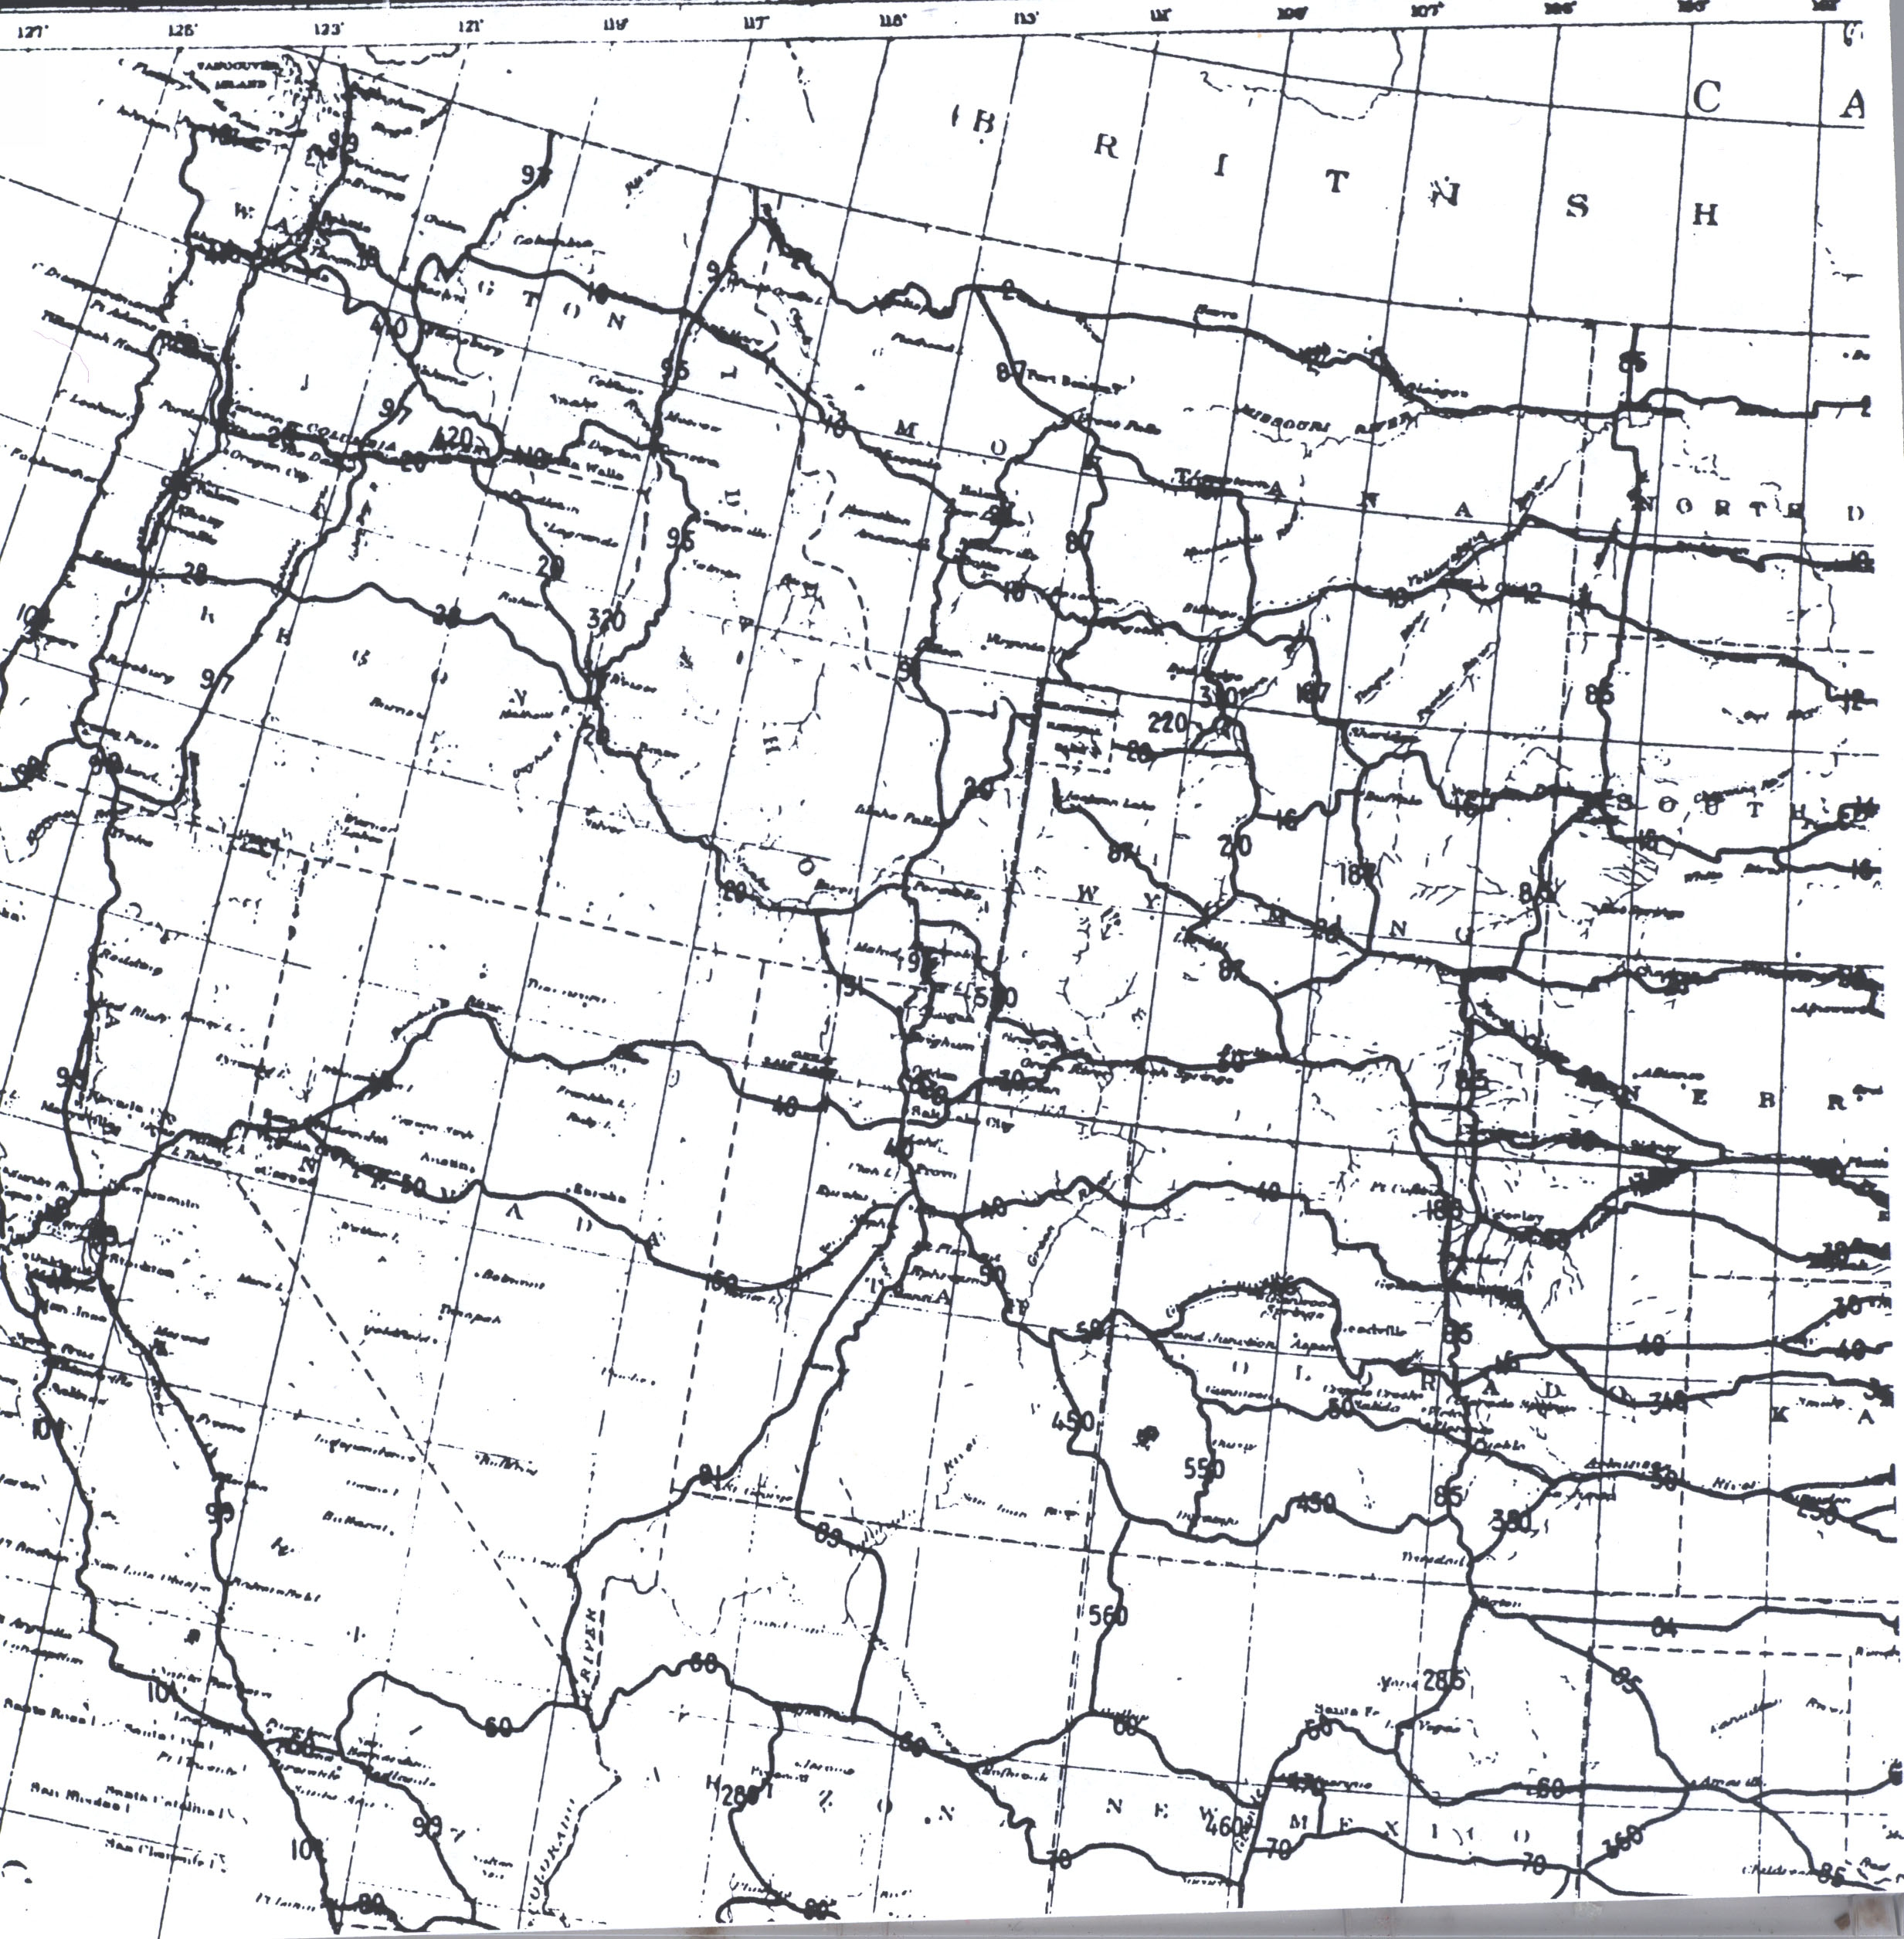 Outline Map likewise Cameroon Outline Map as well Midgetmap besides Texas State Maps besides Longmap. on usa map with states and highways